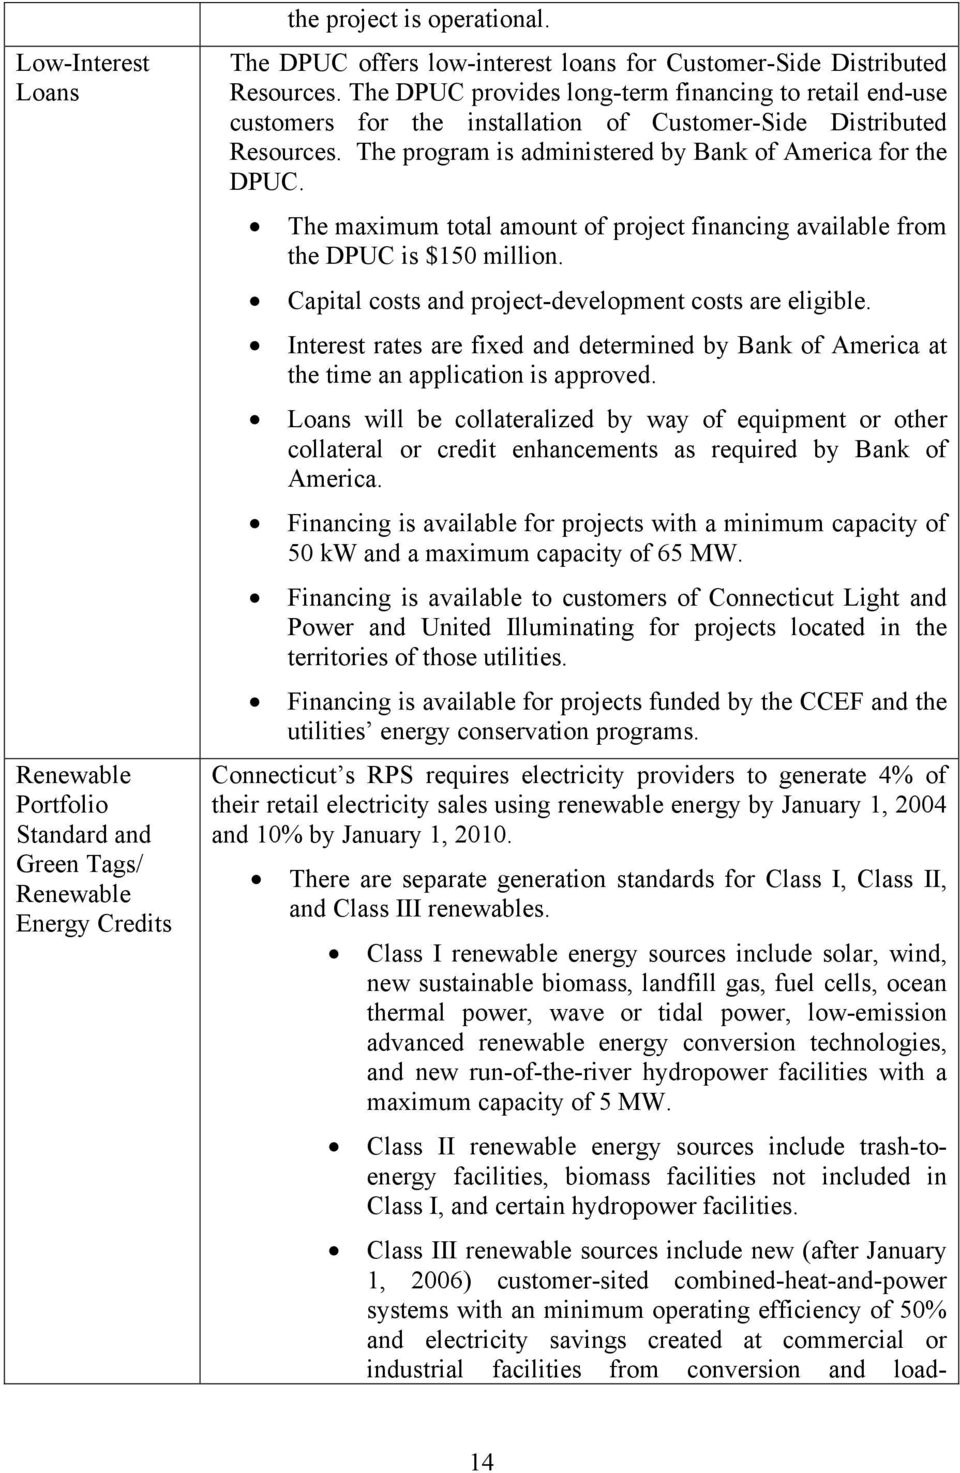 The maximum total amount of project financing available from the DPUC is $150 million. Capital costs and project-development costs are eligible.